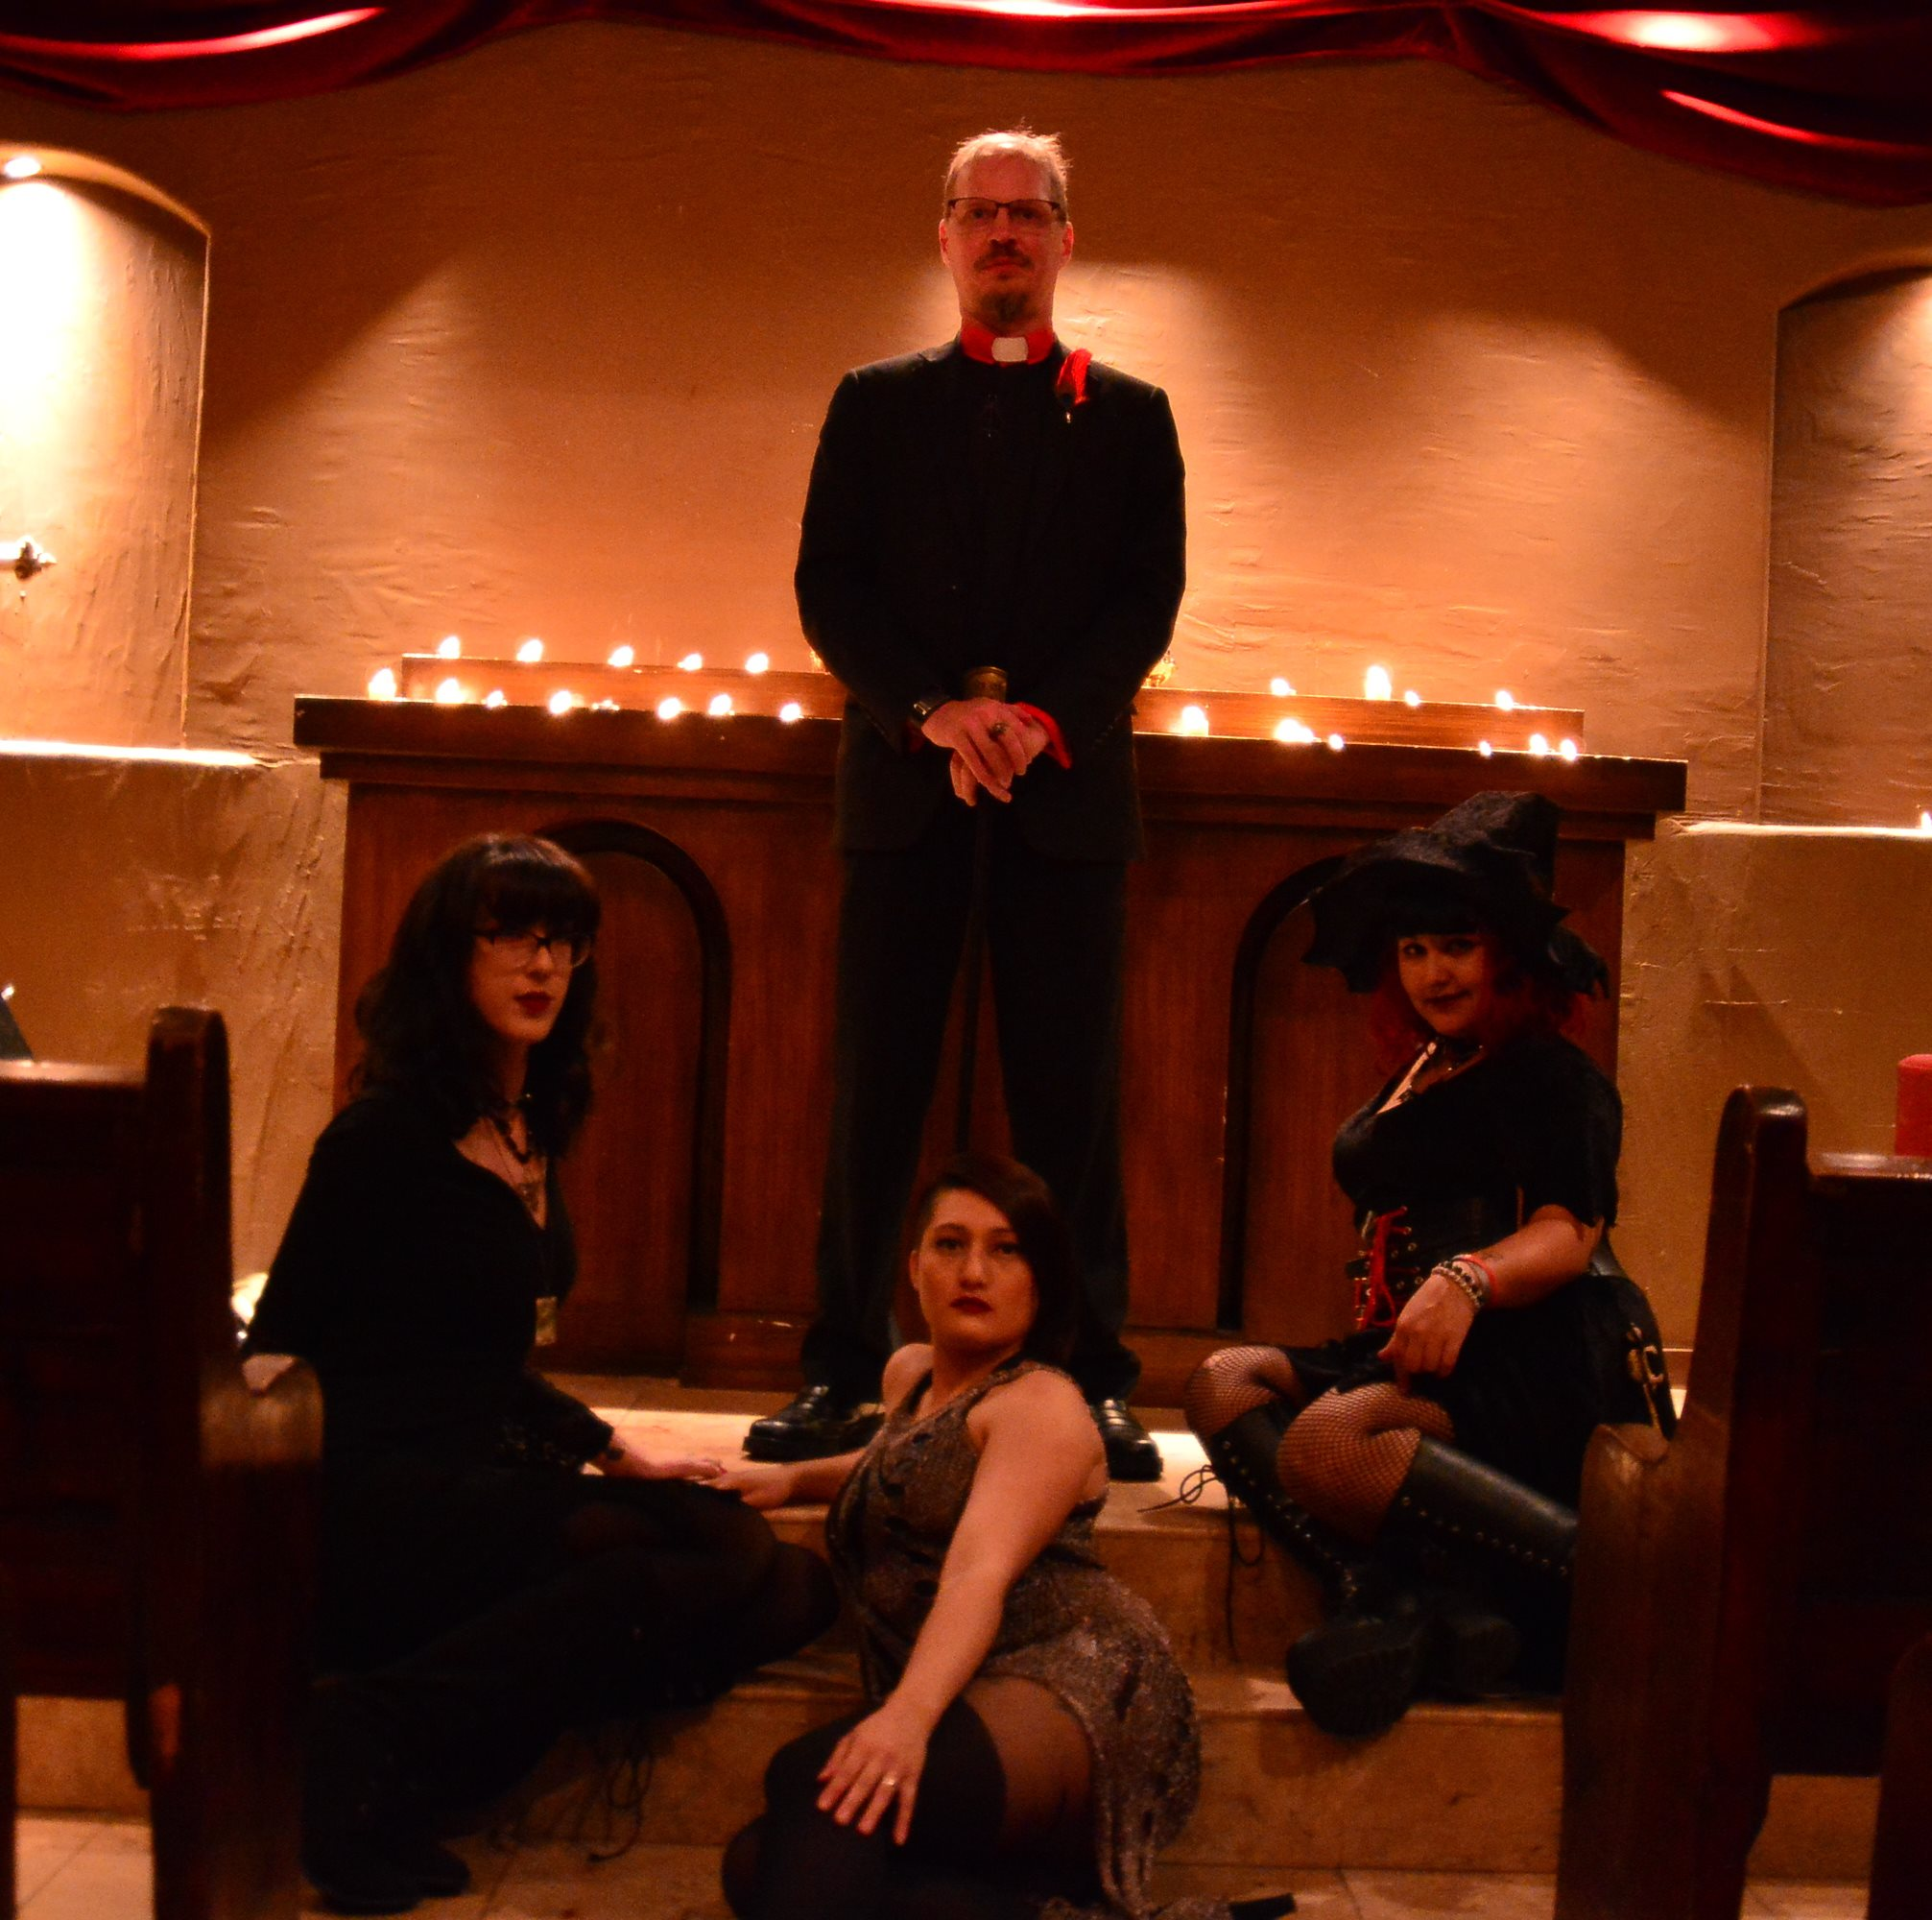 Brother Slim stands in front of a candle lit altar, with Koffin Kitty, Snake Oil, and Bat Wing sitting on the steps at his feet.